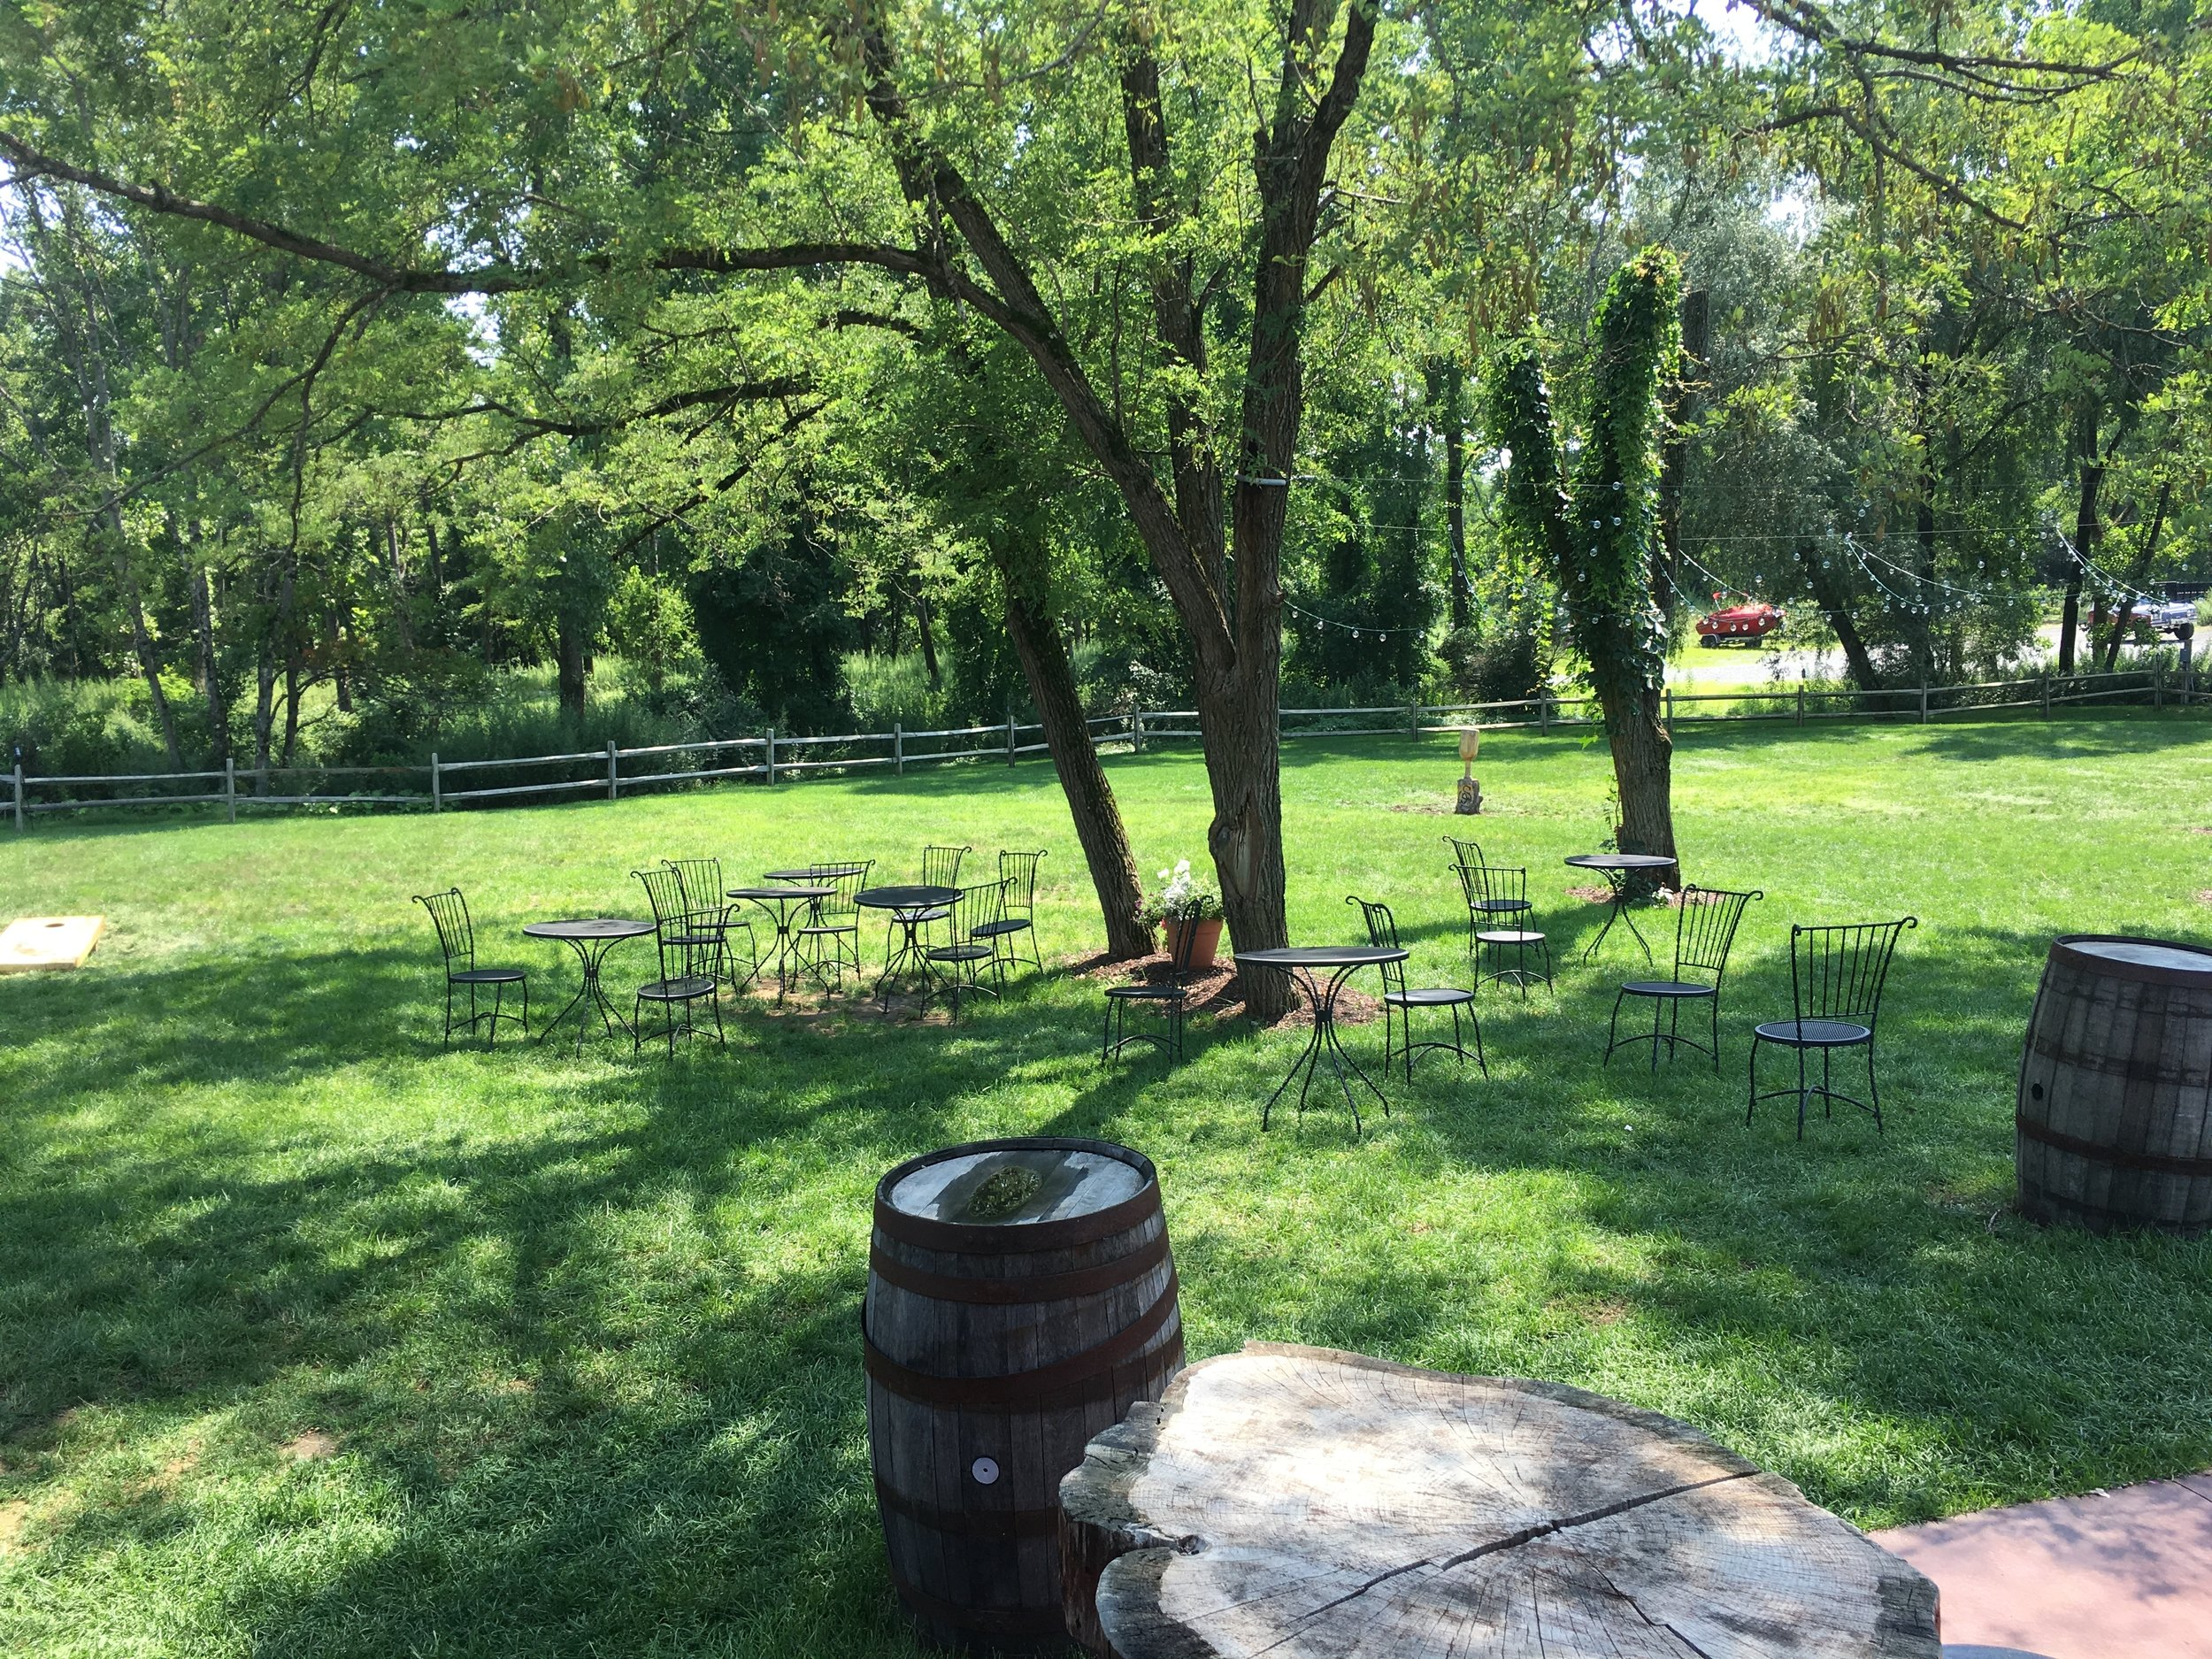 Outdoor Seating at the Winery